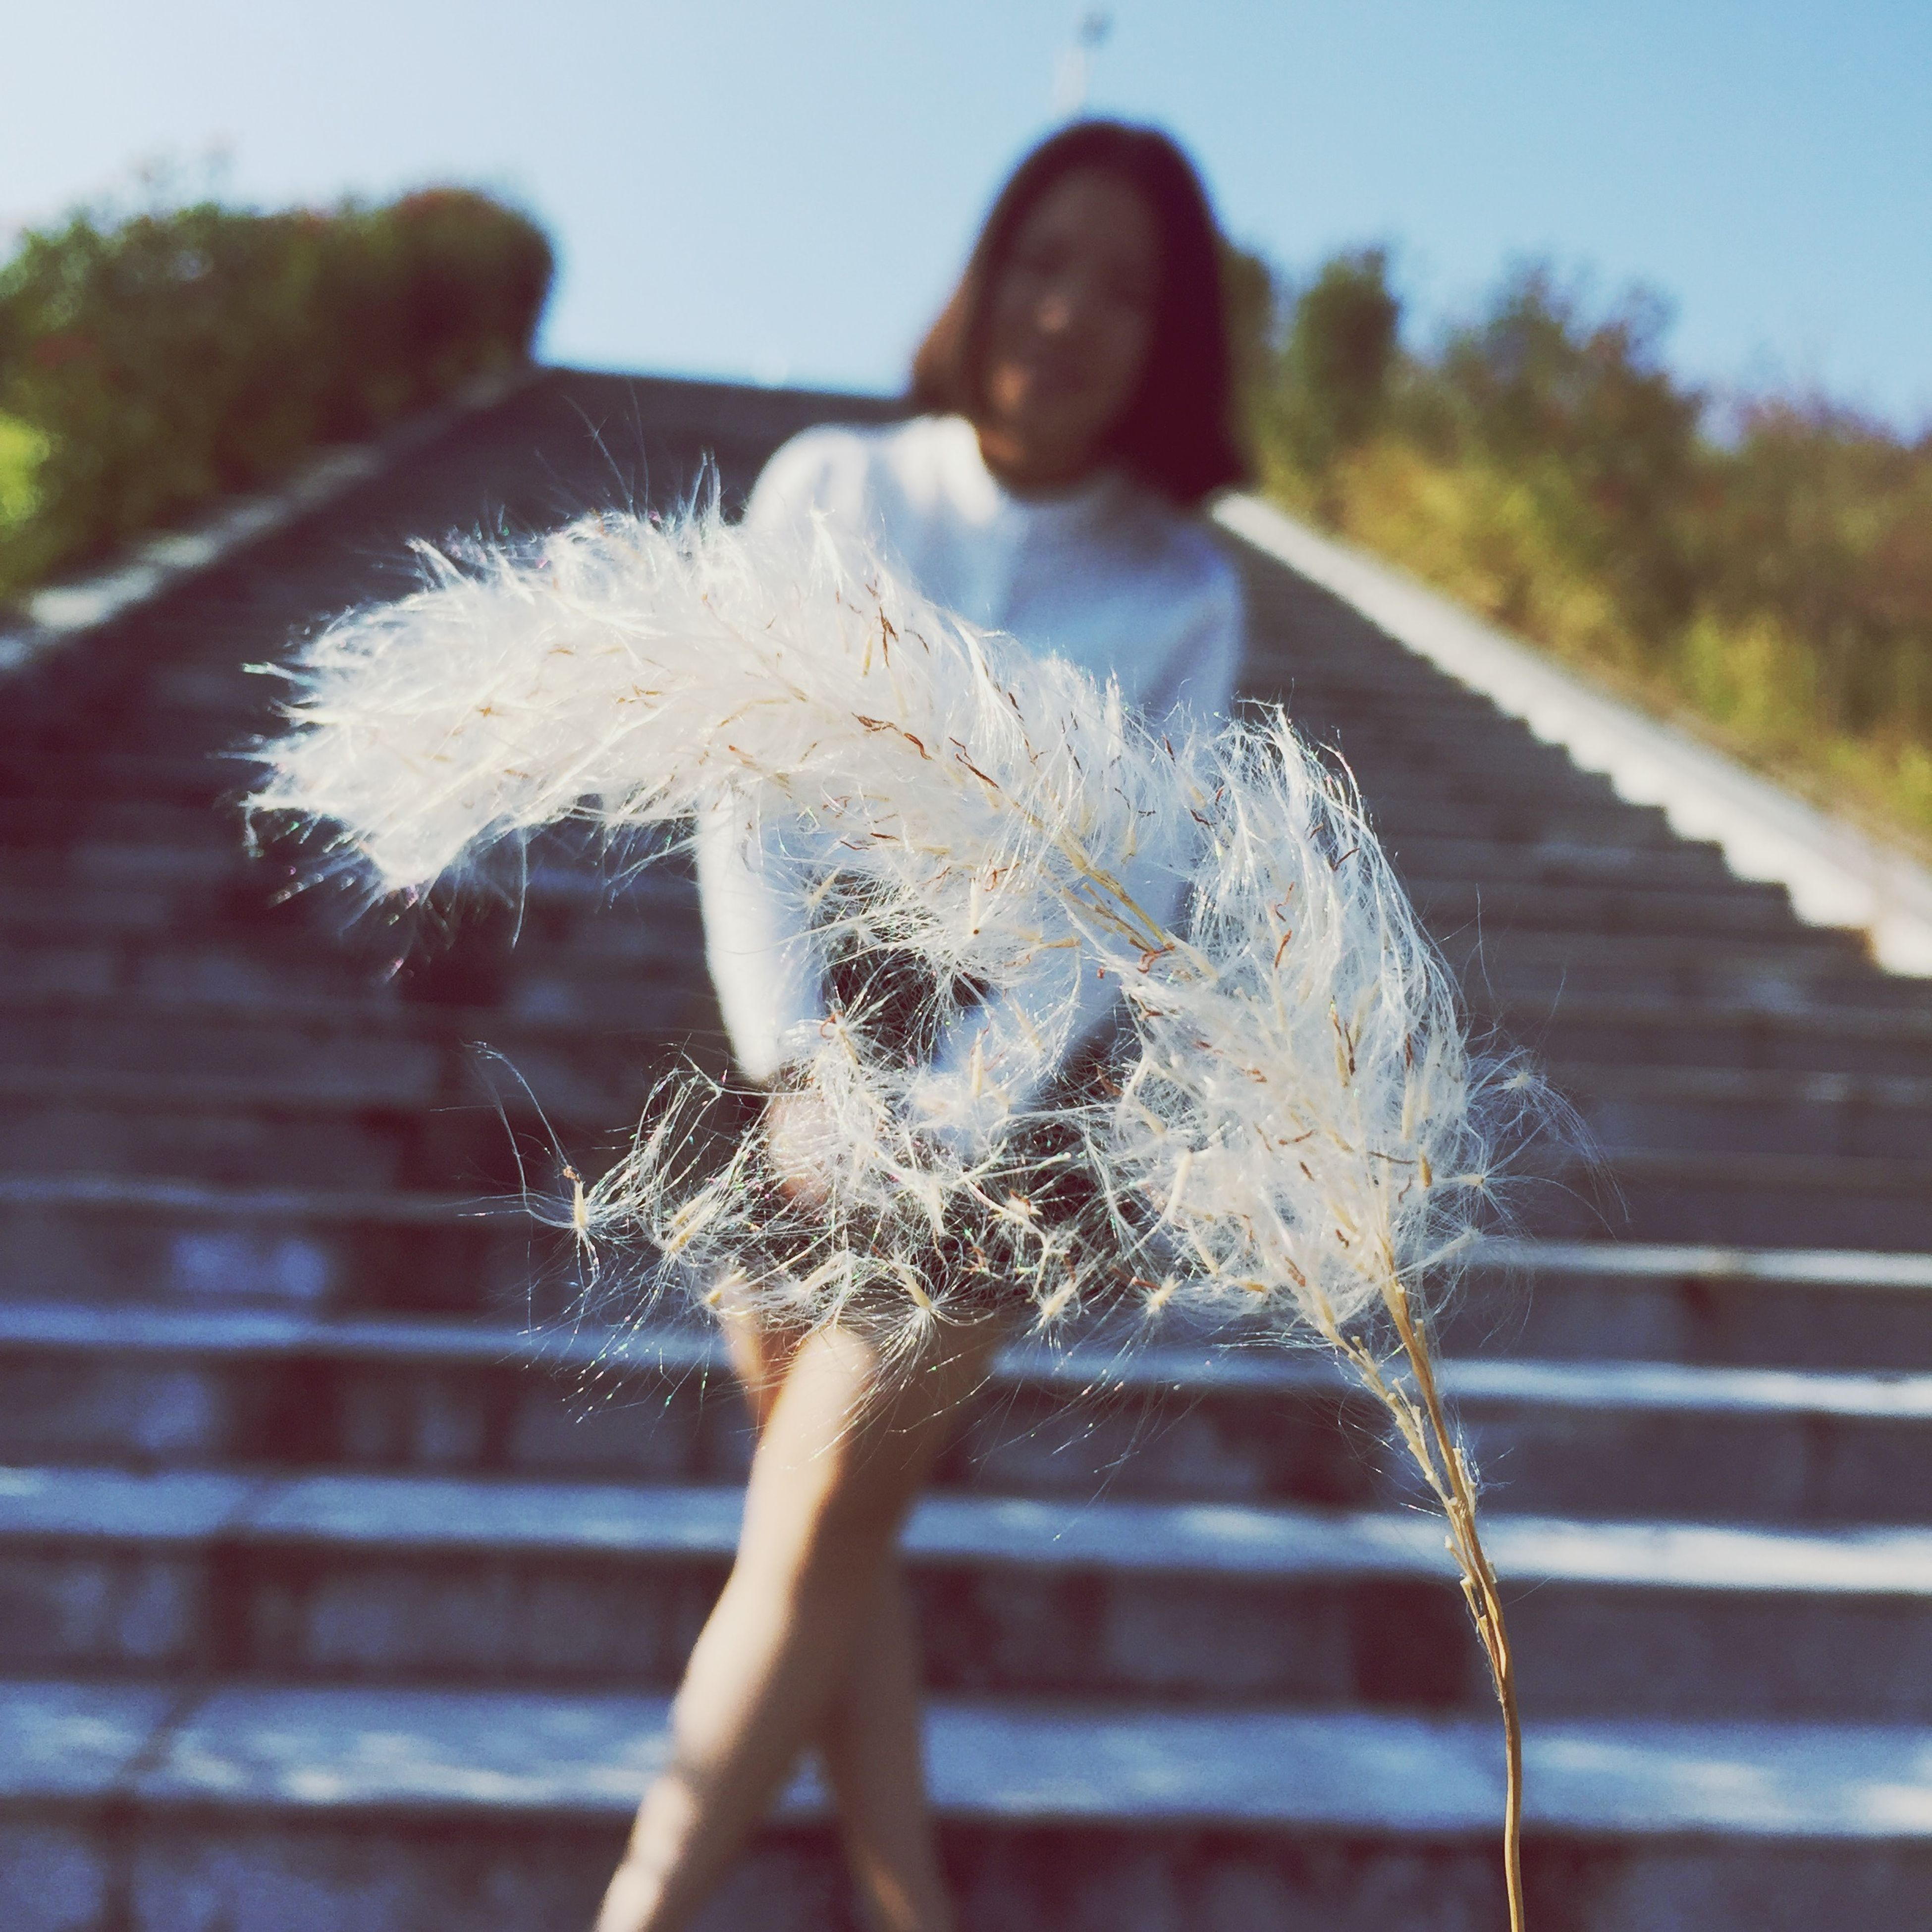 focus on foreground, dandelion, close-up, holding, day, outdoors, flower, nature, selective focus, fragility, lifestyles, leisure activity, sky, side view, rear view, full length, person, stem